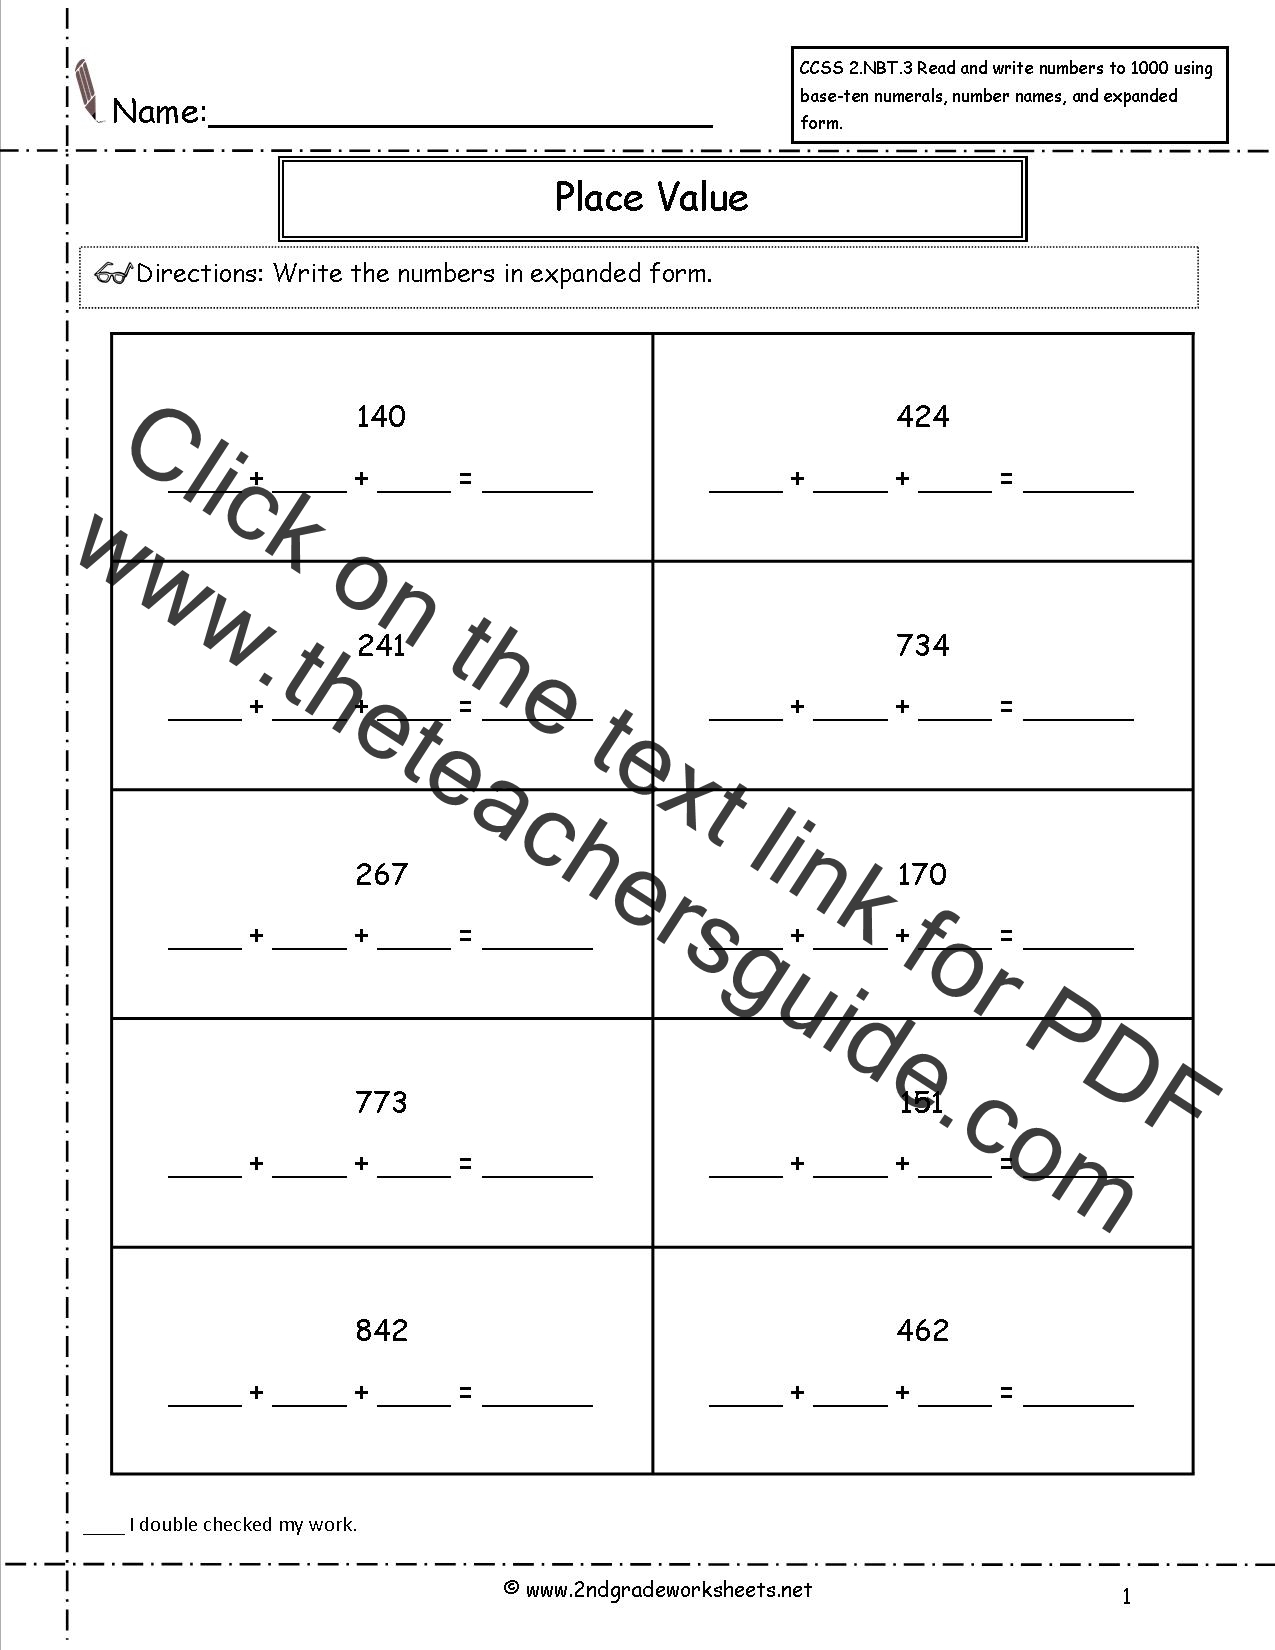 Printables Expanded Form Worksheets 2nd Grade ccss 2 nbt 3 worksheets place value read and write numbers 4 5